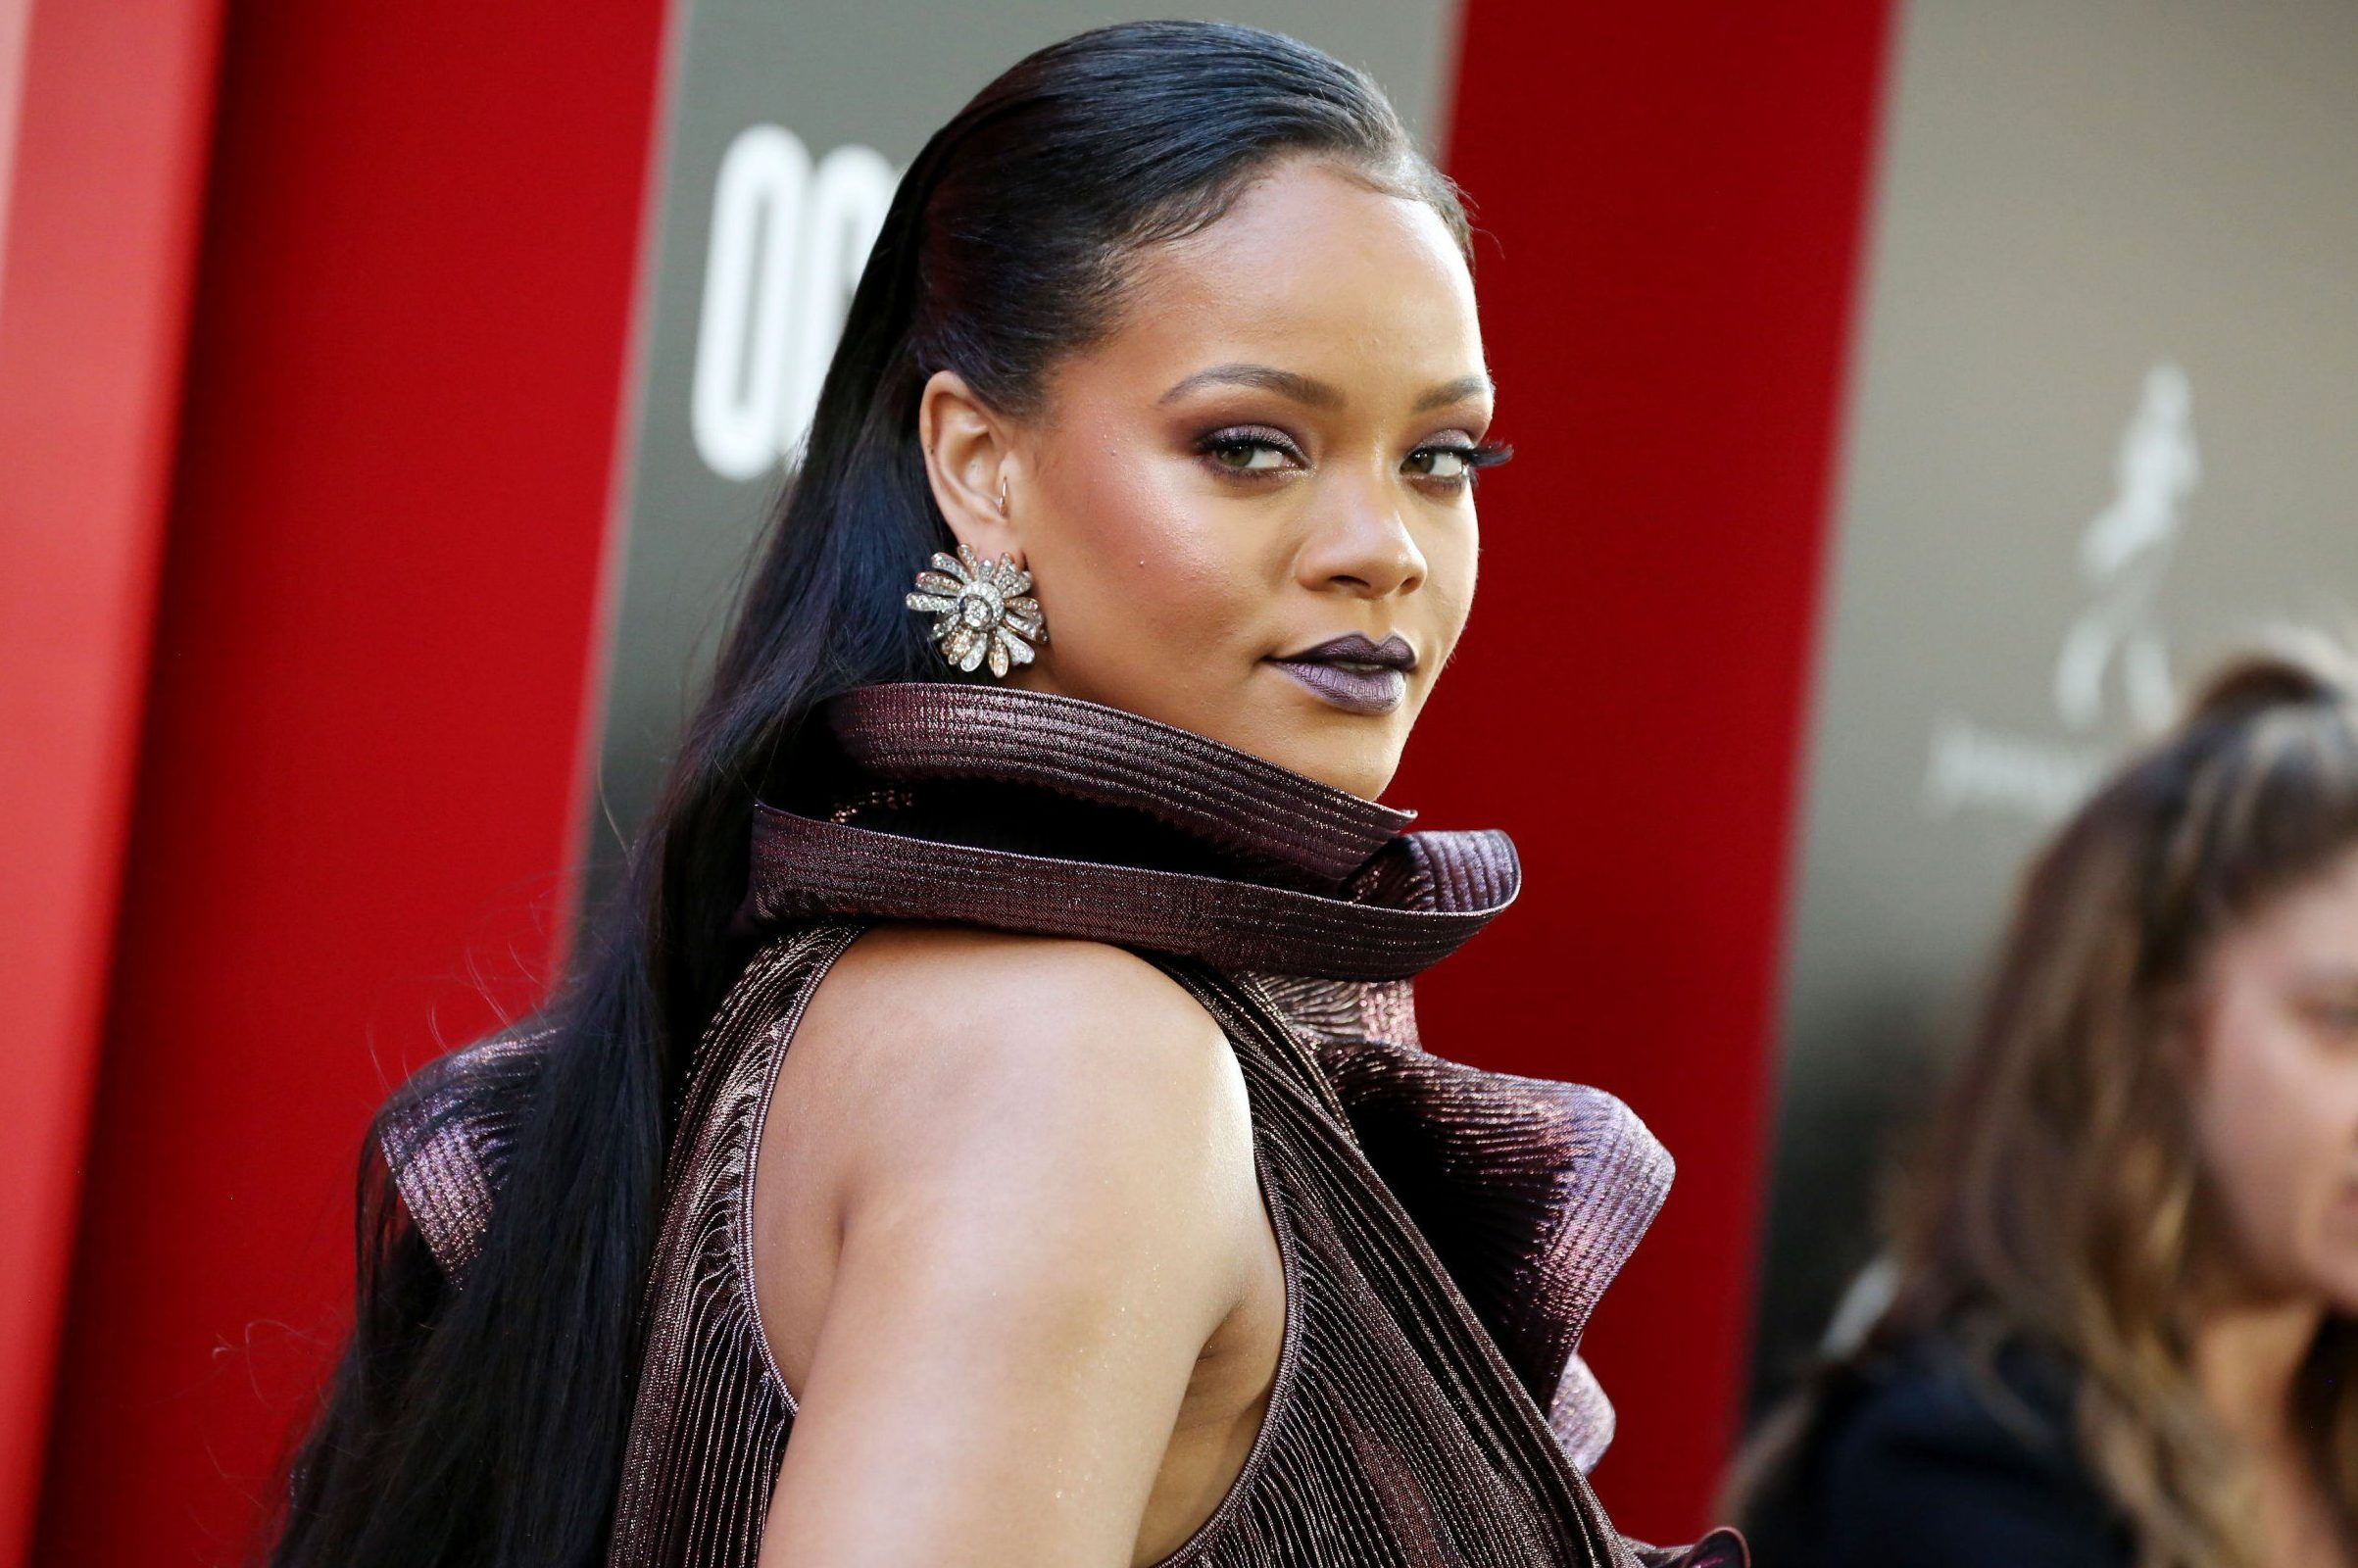 Rihanna proves her boss status as she helps make-up artist track down lost luggage